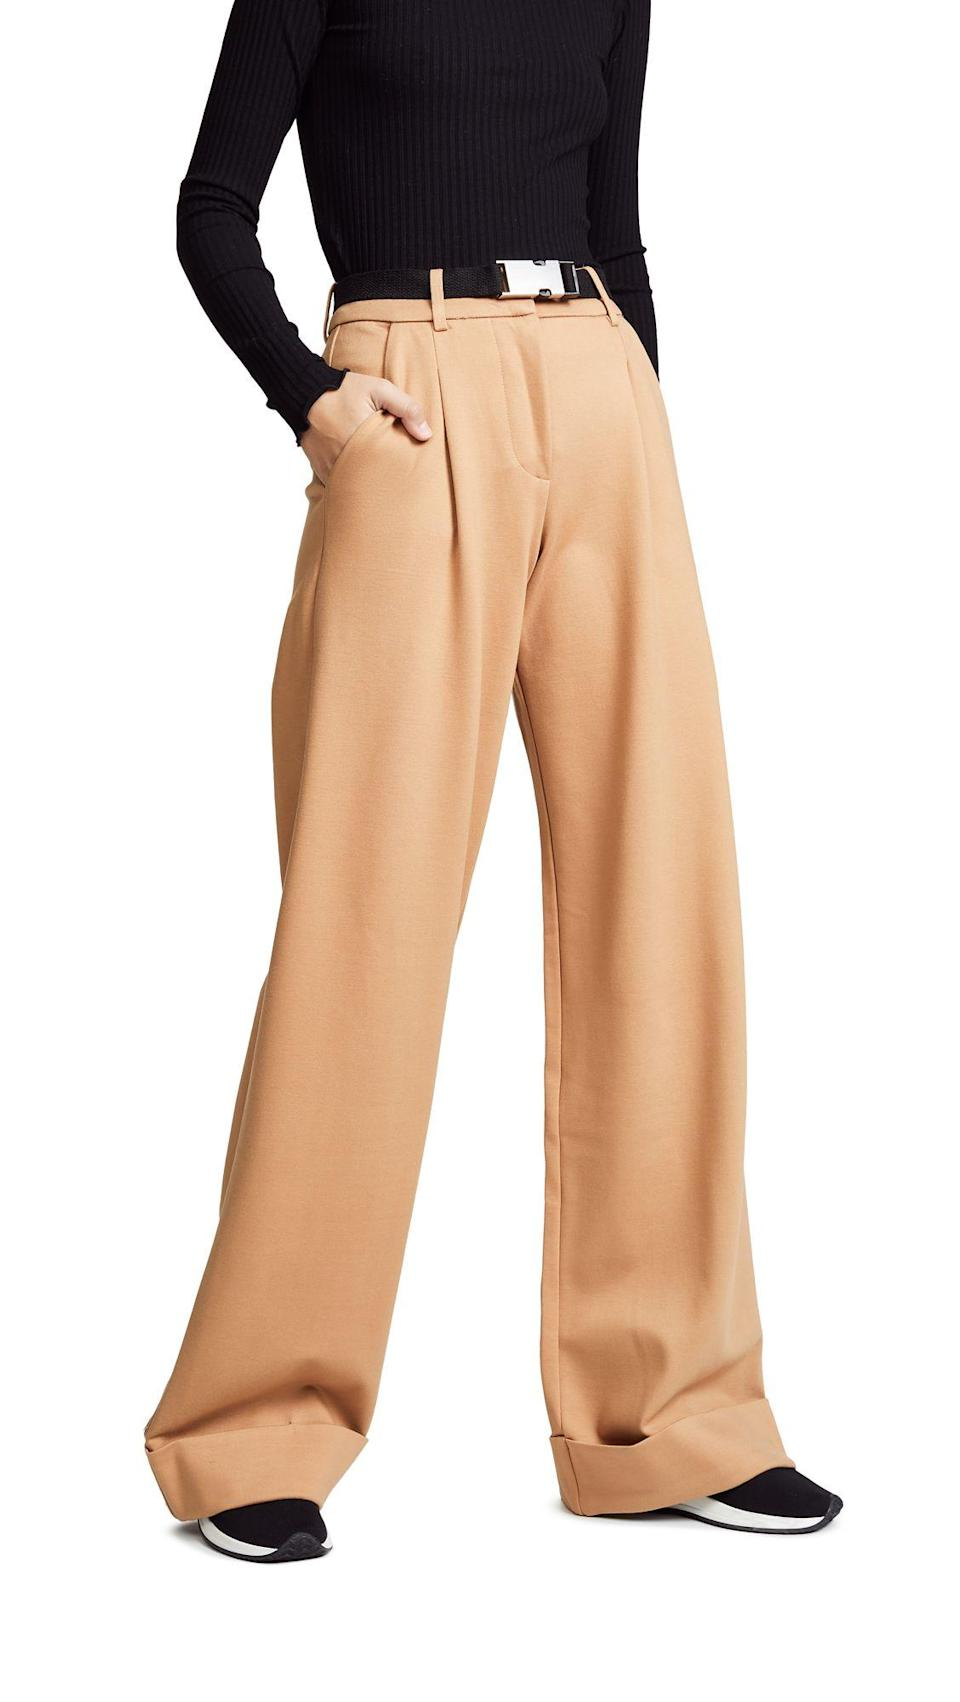 Then, add your tan trousers to the mix.